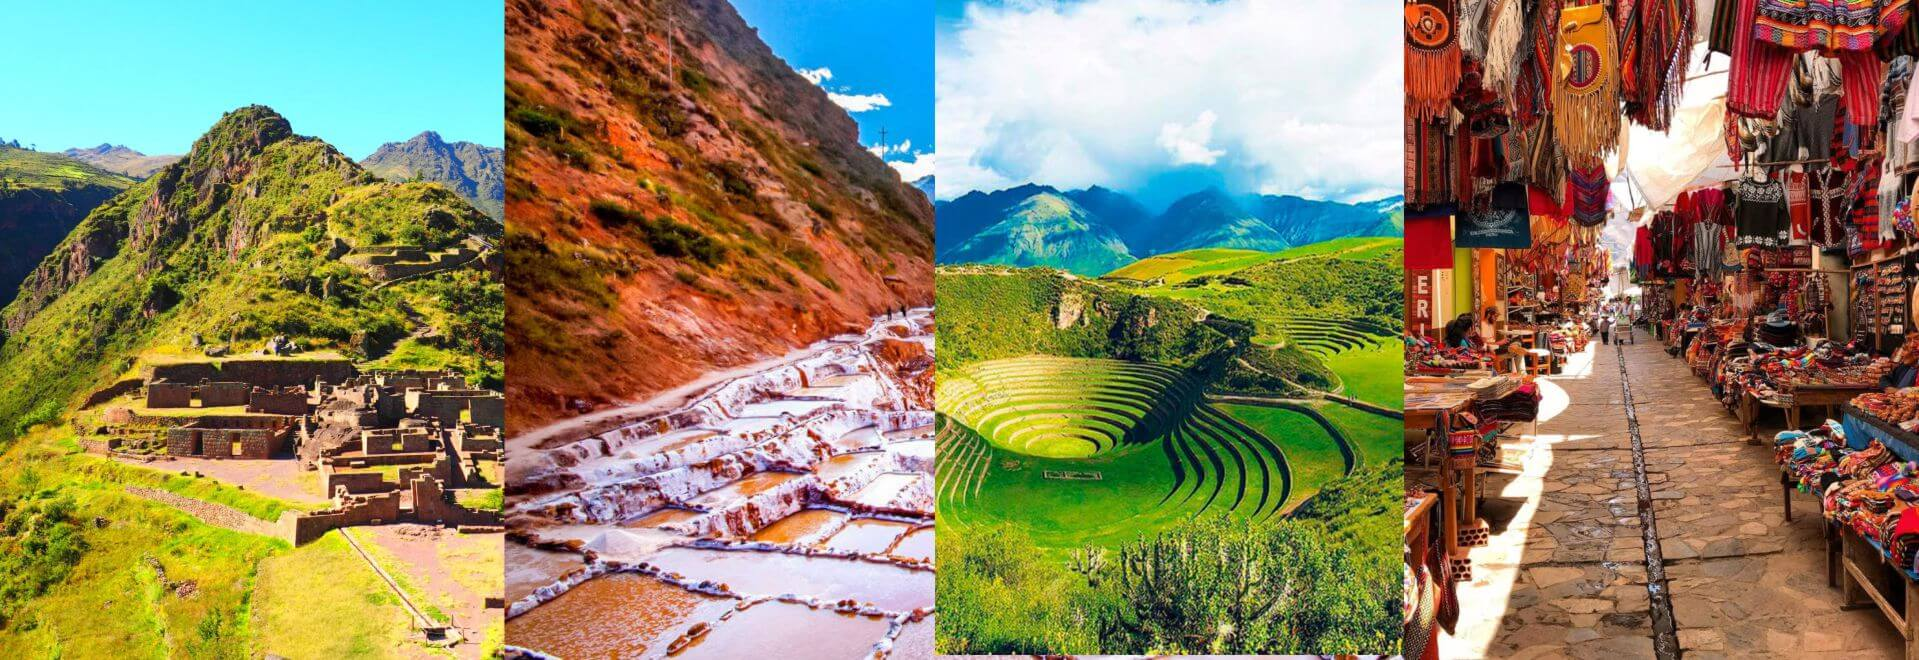 sacred valley tour by taxi